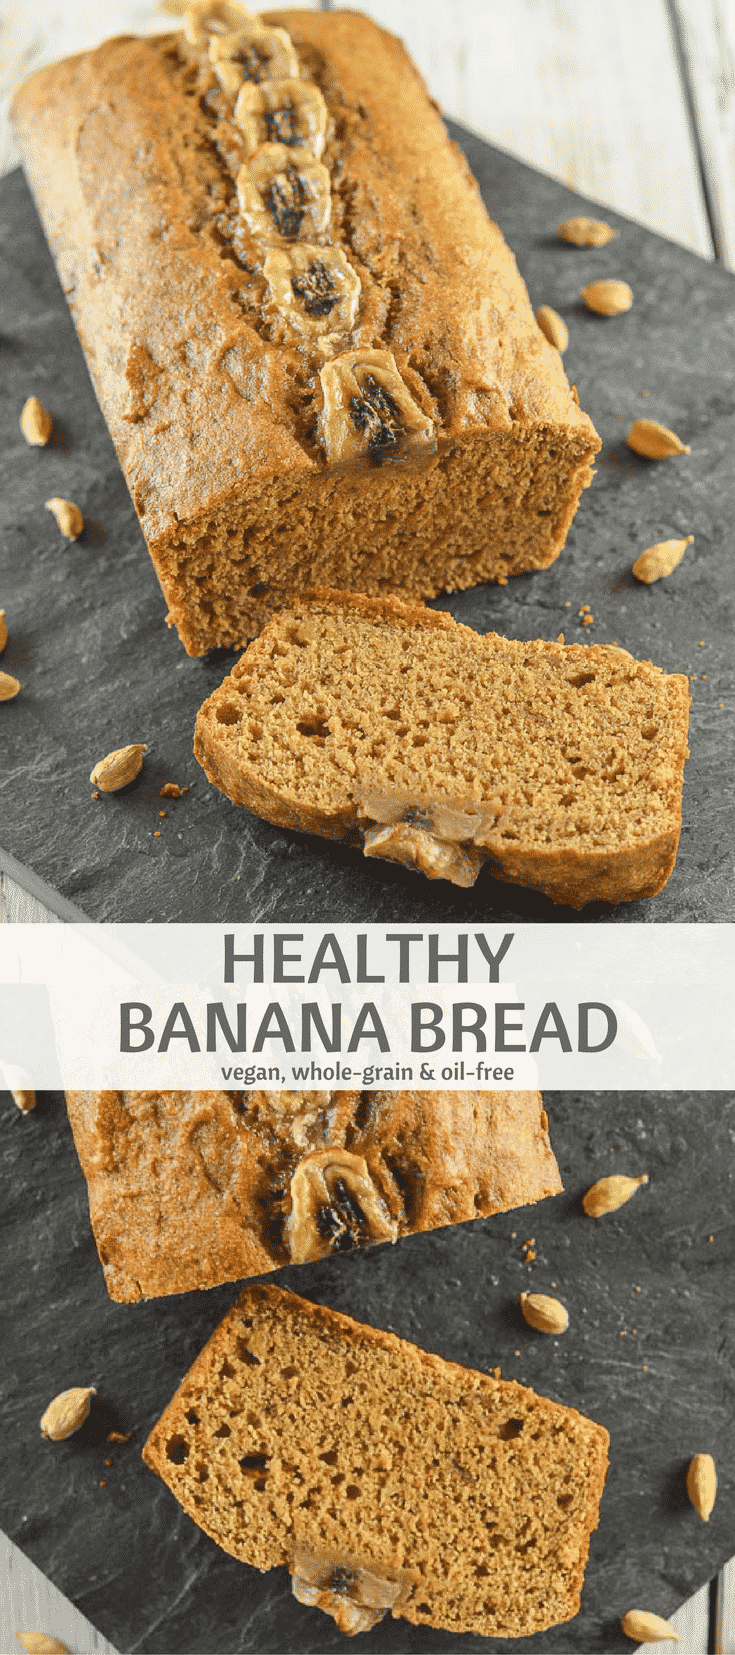 Healthy Banana Bread Whole Grain Oil Free A Virtual Vegan